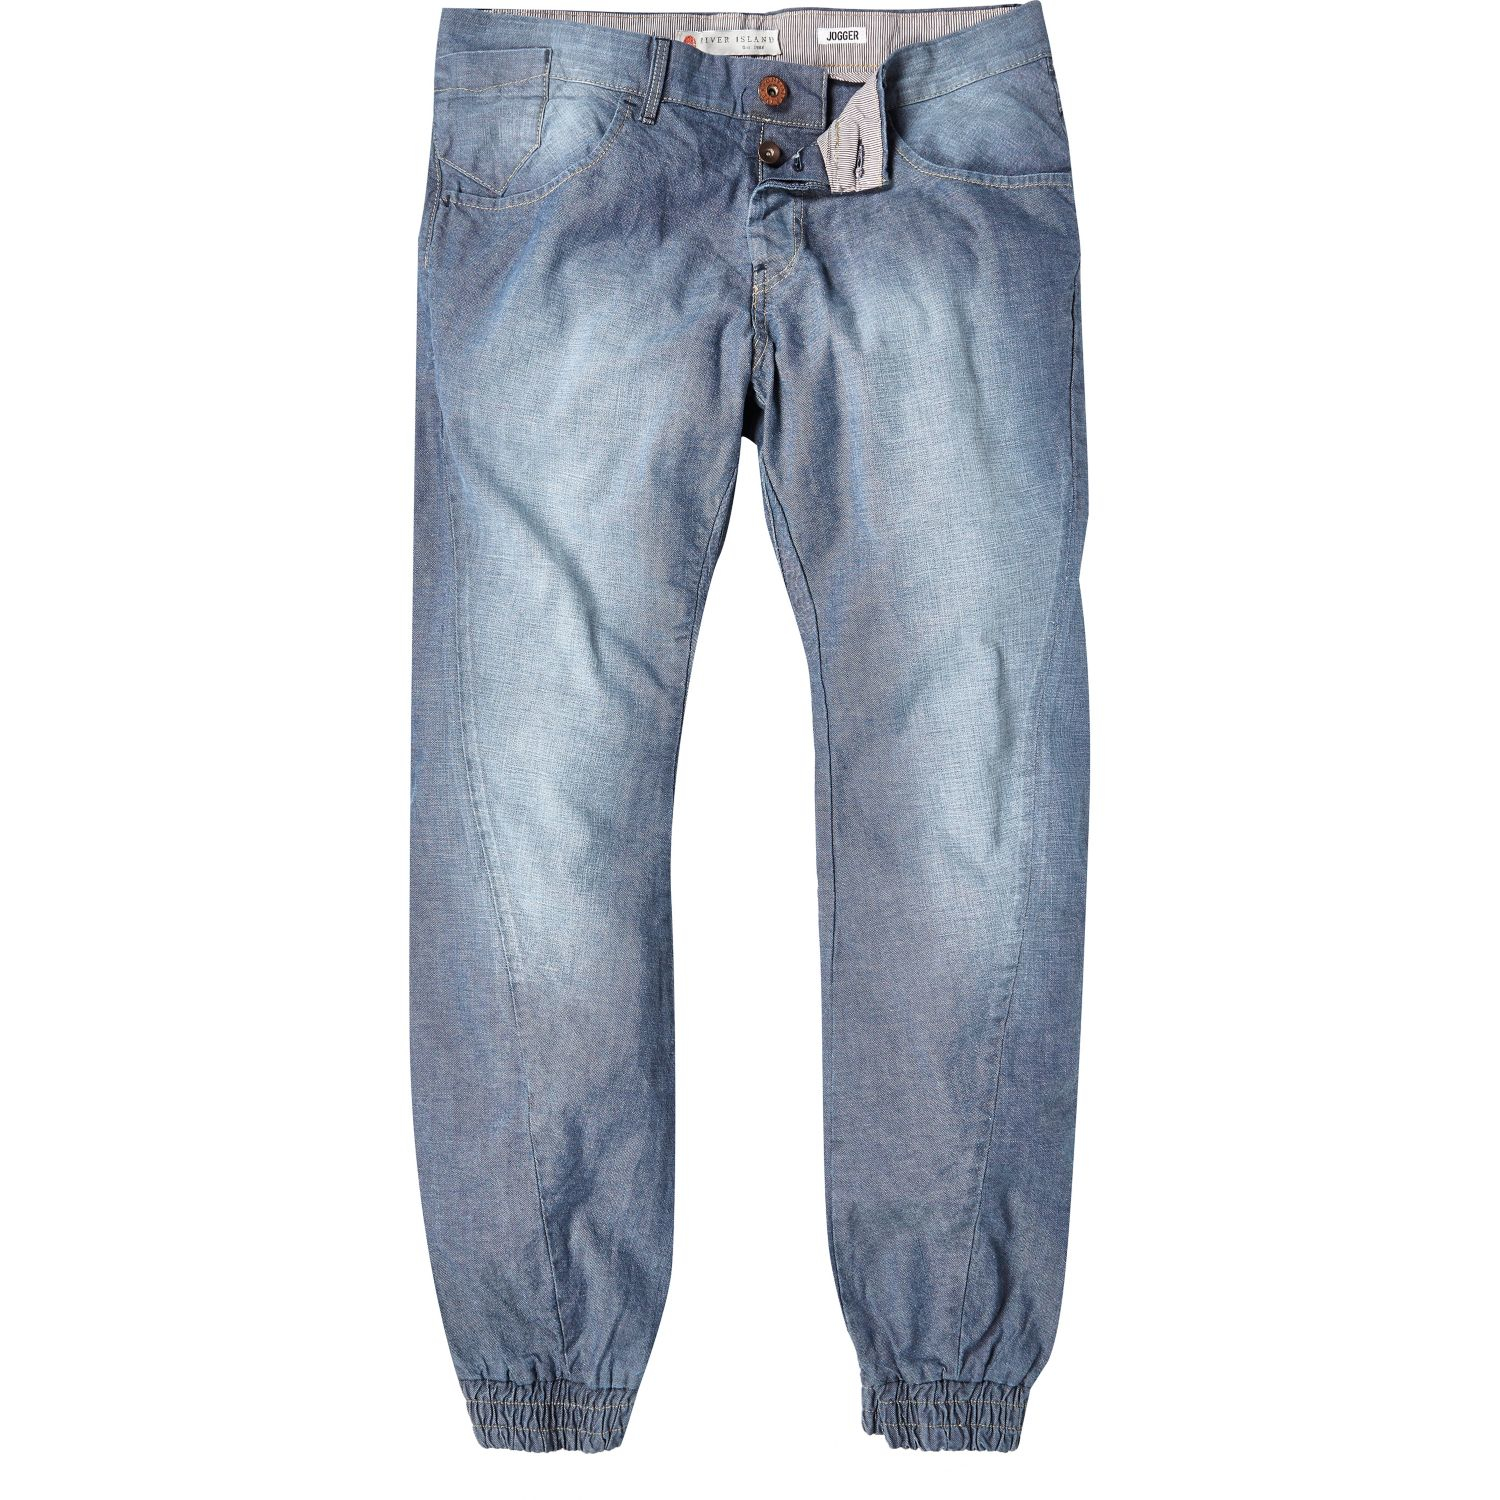 Original NEW WOMENS LIGHT BLUE STONE WASH FADED DISTRESSED SLOCUH JOGGER JEANS